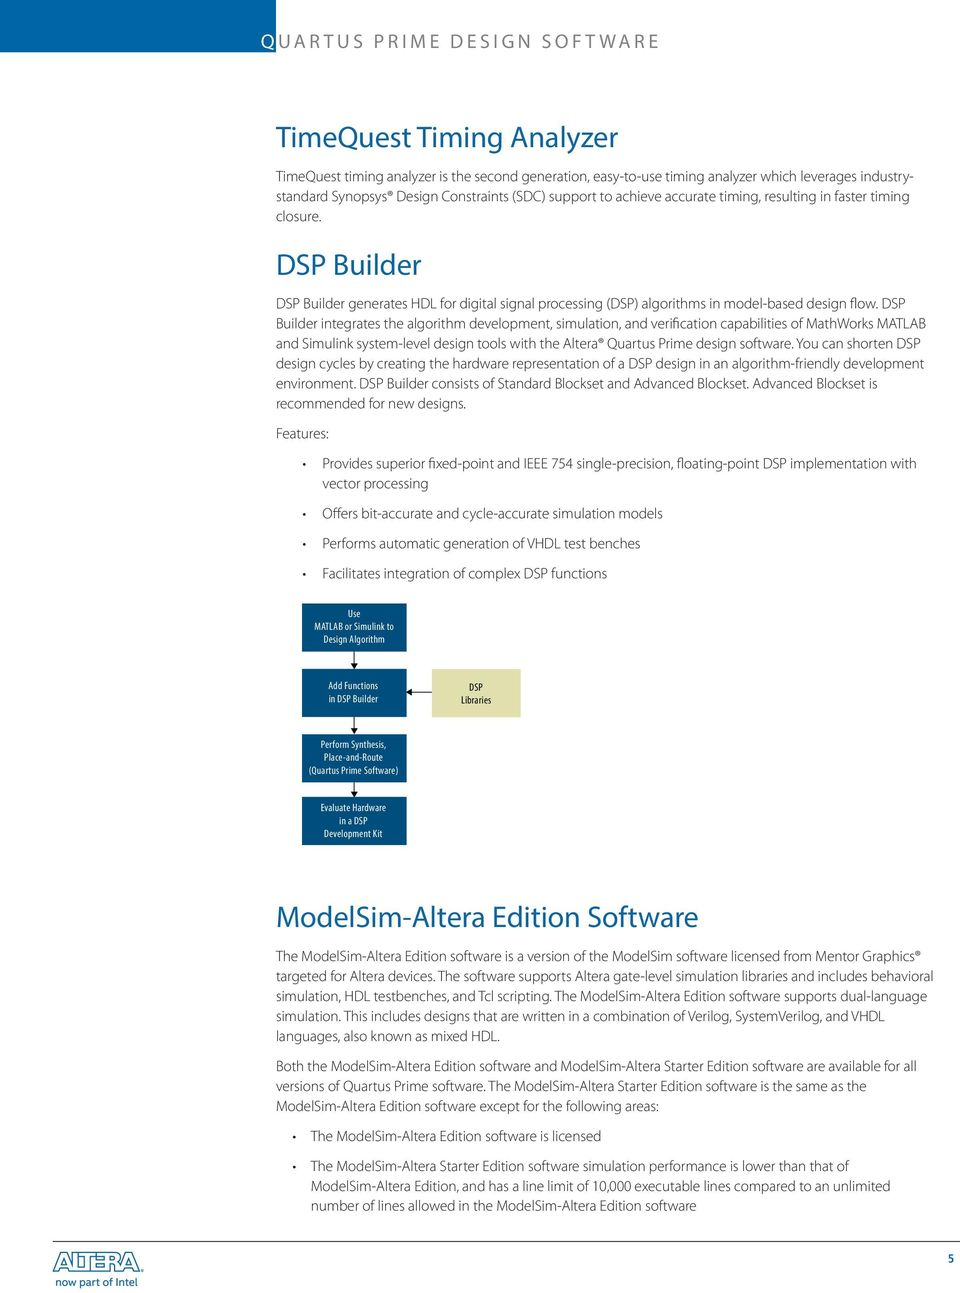 DSP Builder integrates the algorithm development, simulation, and verification capabilities of MathWorks MATLAB and Simulink system-level design tools with the Altera Quartus Prime design software.